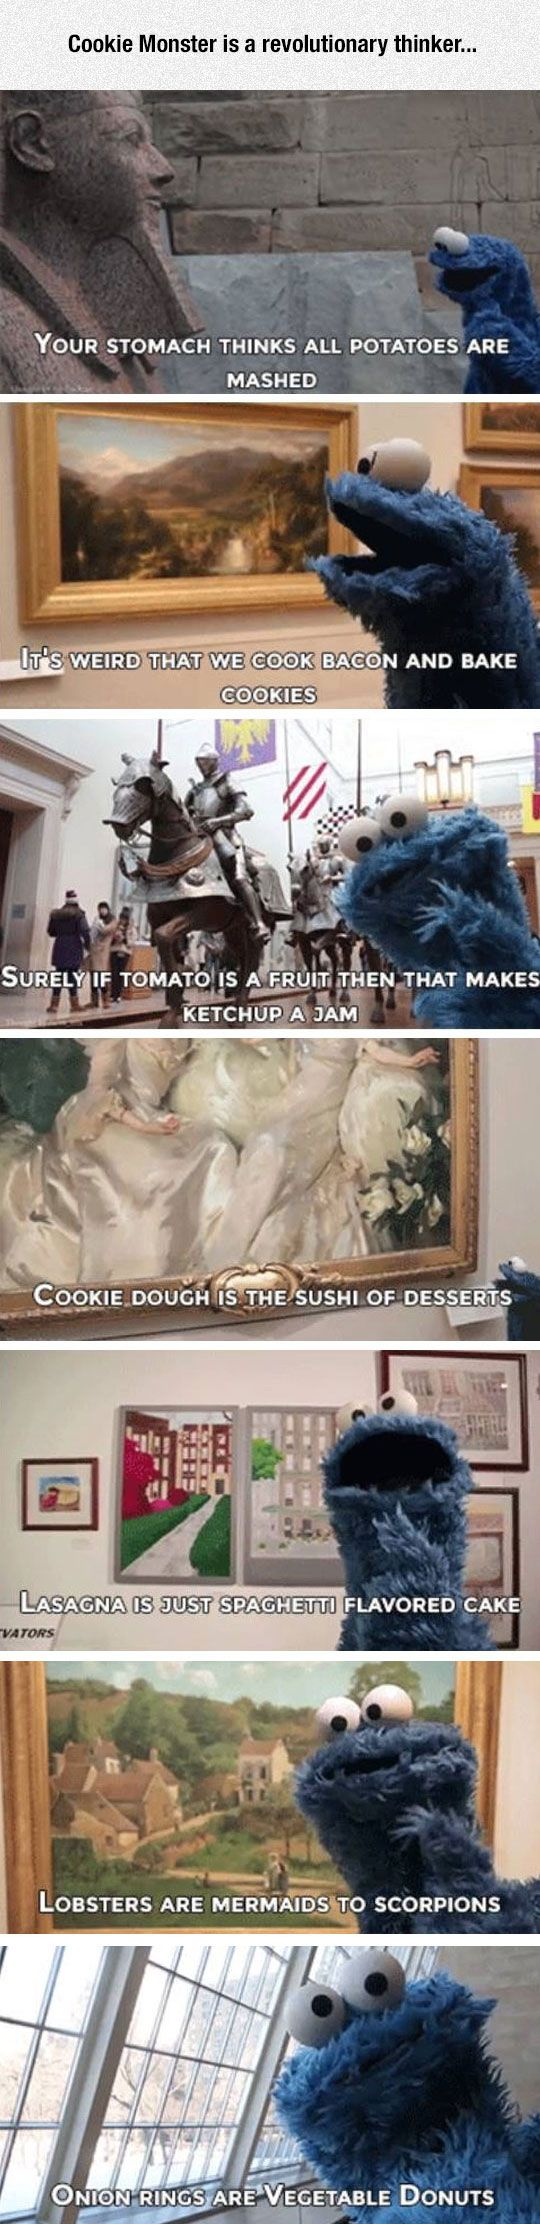 Cookie Monster is a revolutionary thinker... <<< wow these are truly some amazing thoughts though!!!